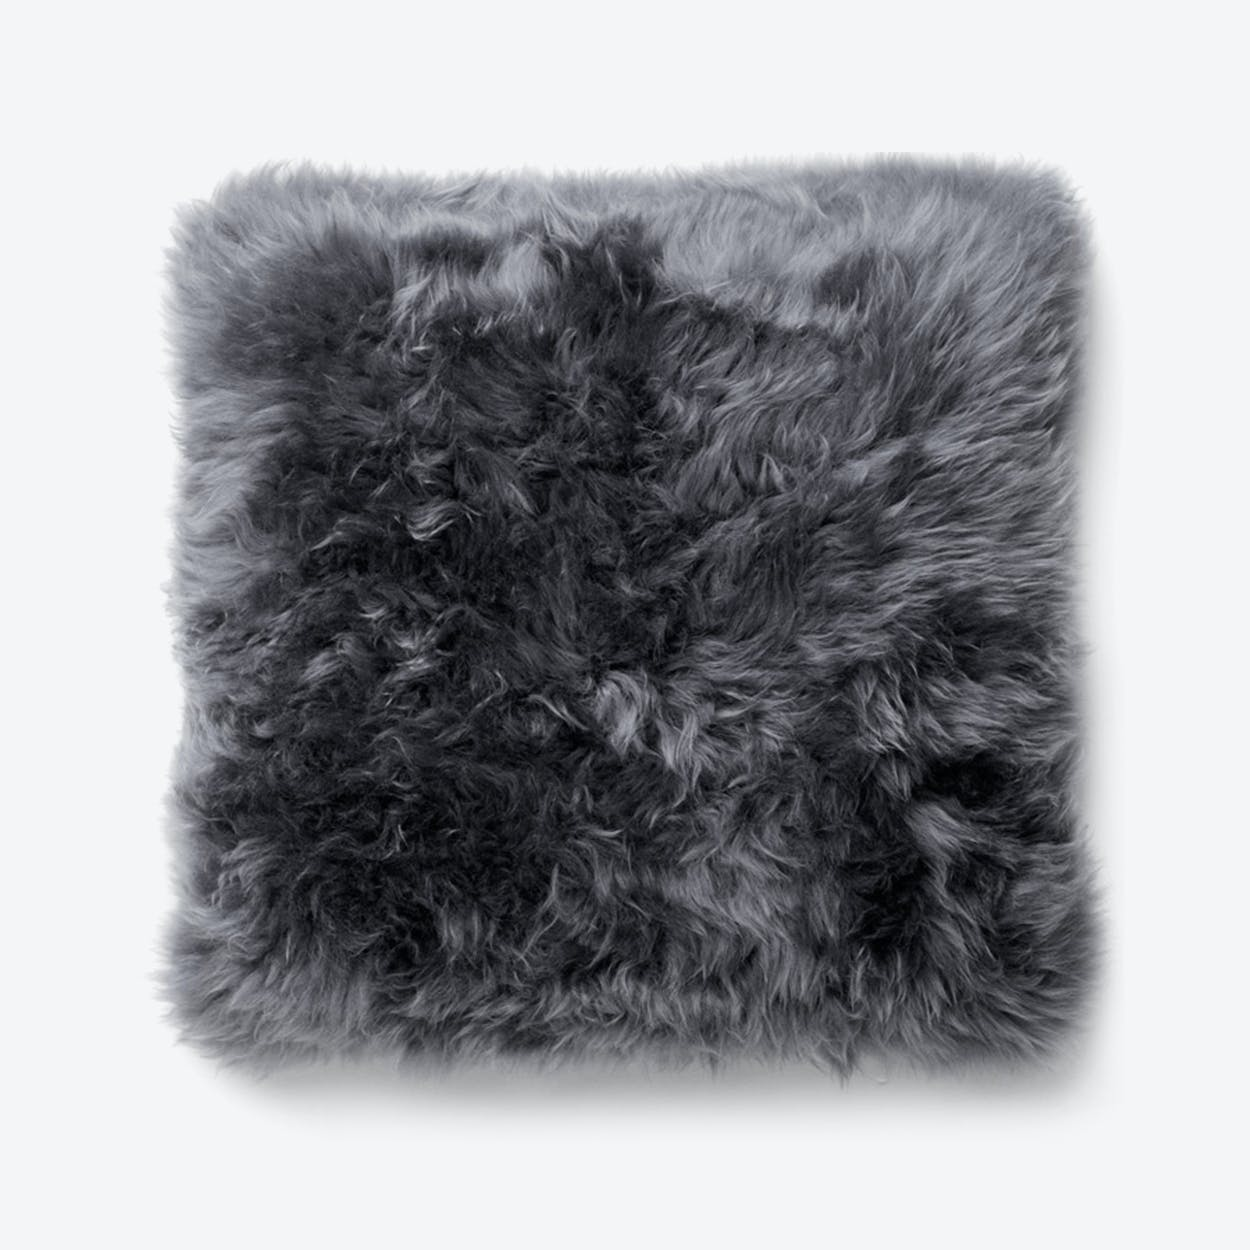 New Zealand Sheepskin Cushion in Grey